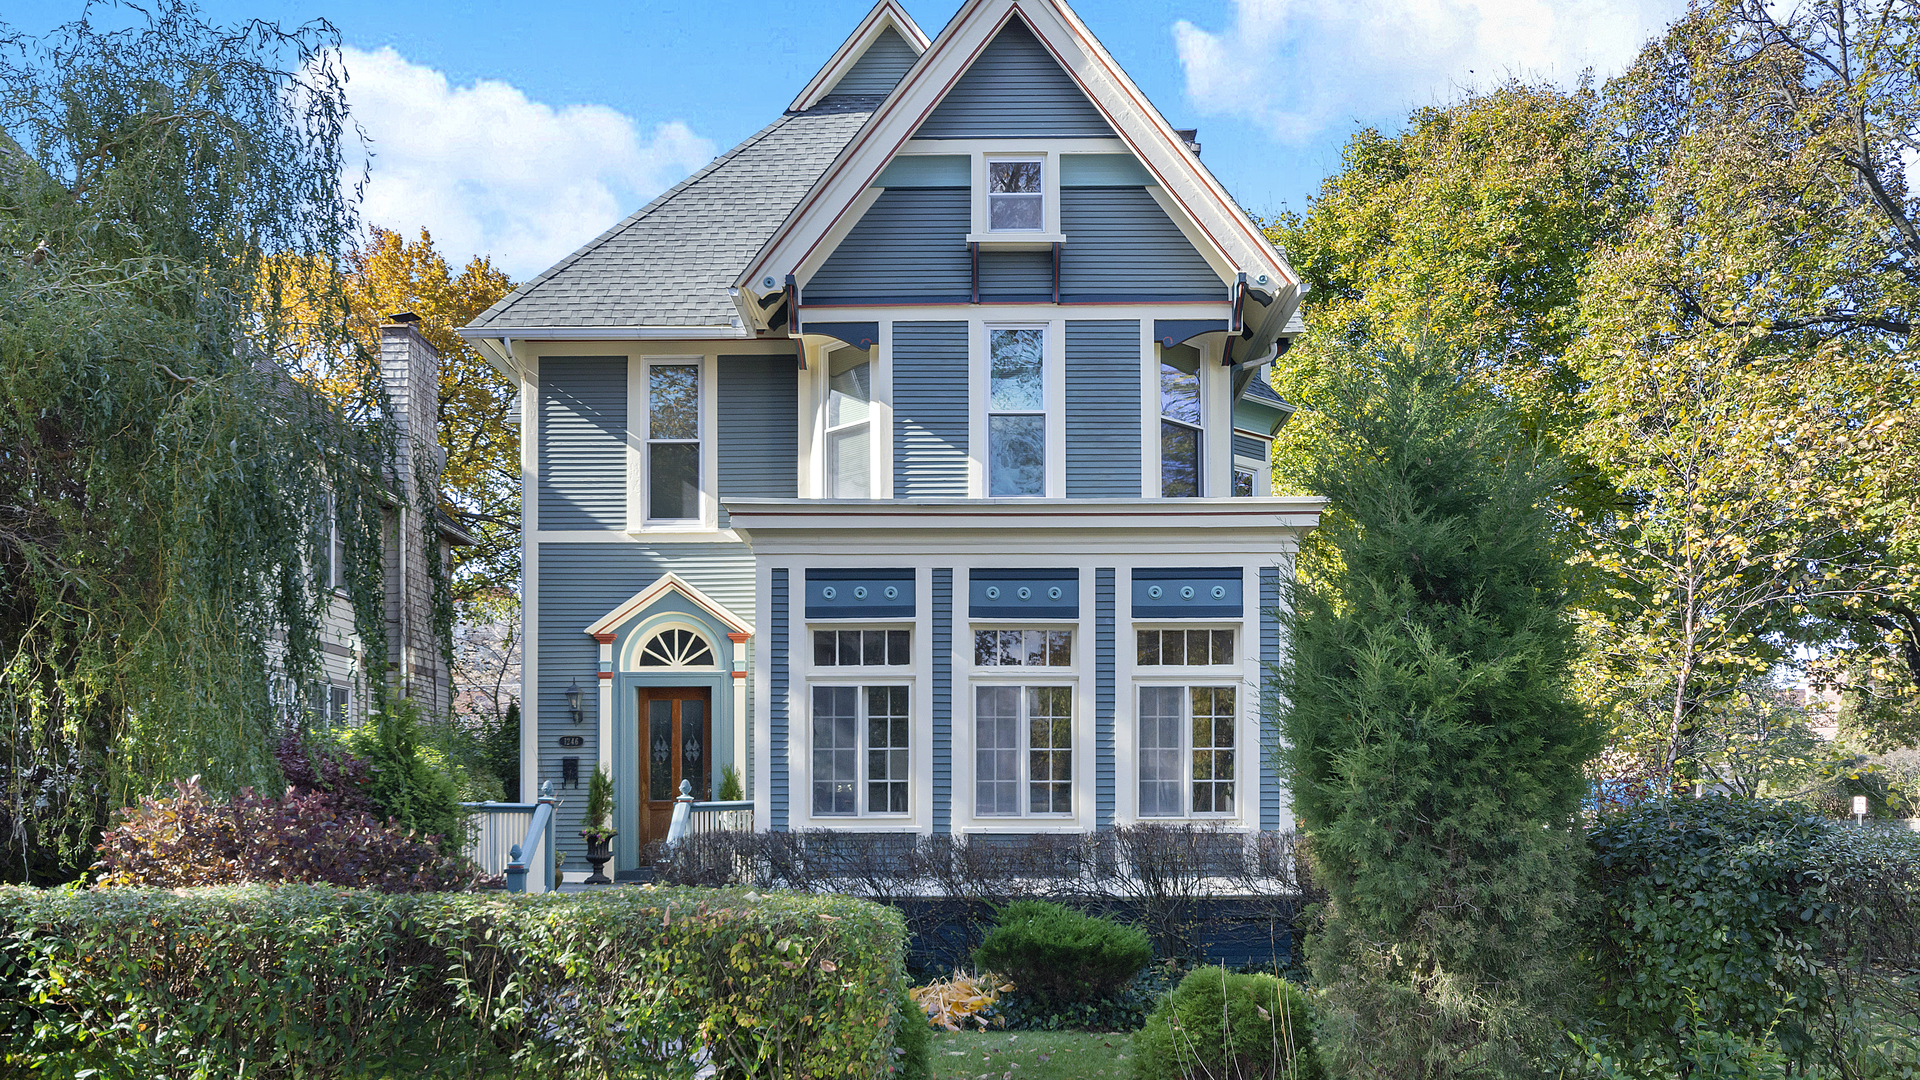 One of Evanston 4 Bedroom Homes for Sale at 1246 Hinman Avenue